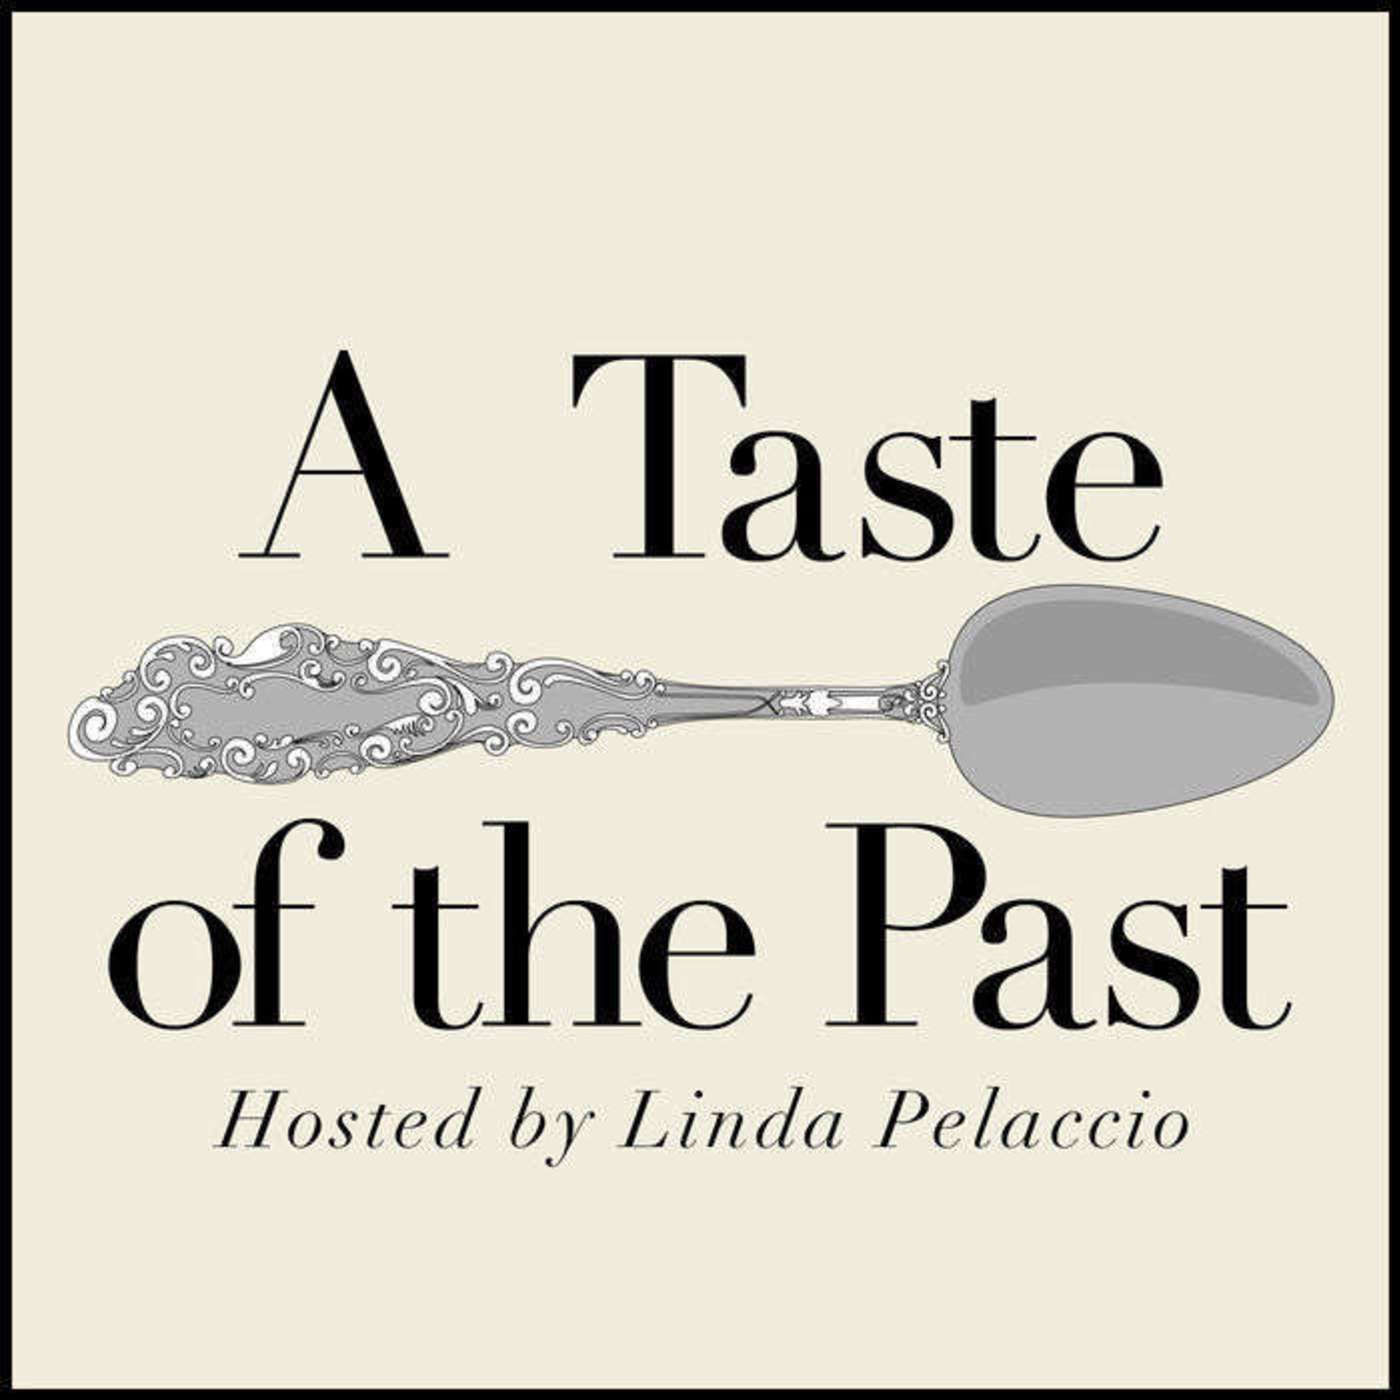 Episode 11: Television Cooking Show History with Kathleen Collins